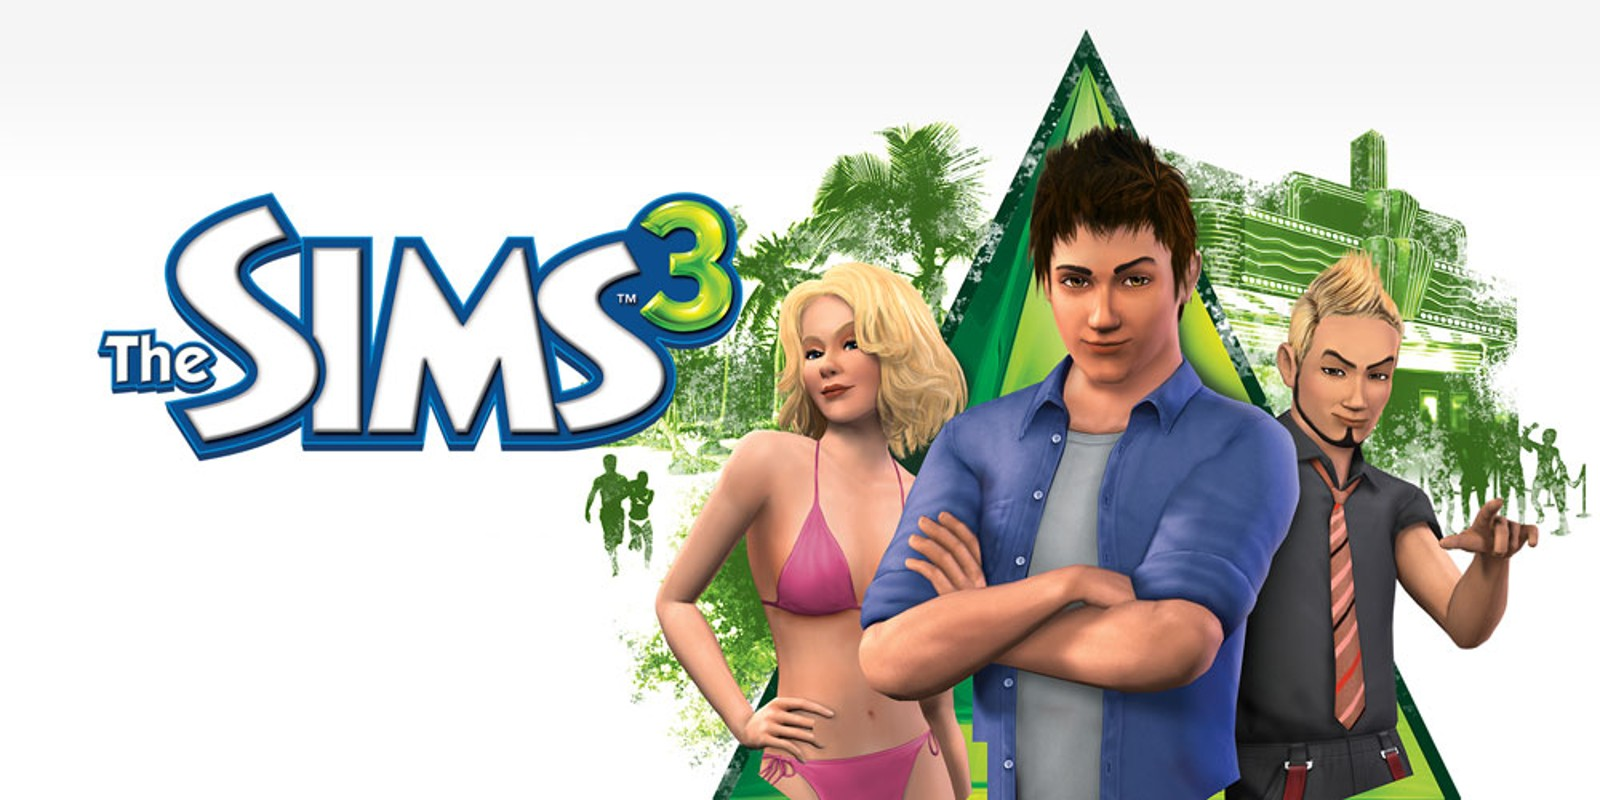 The sims 3 wii games nintendo for Sims 3 spielideen